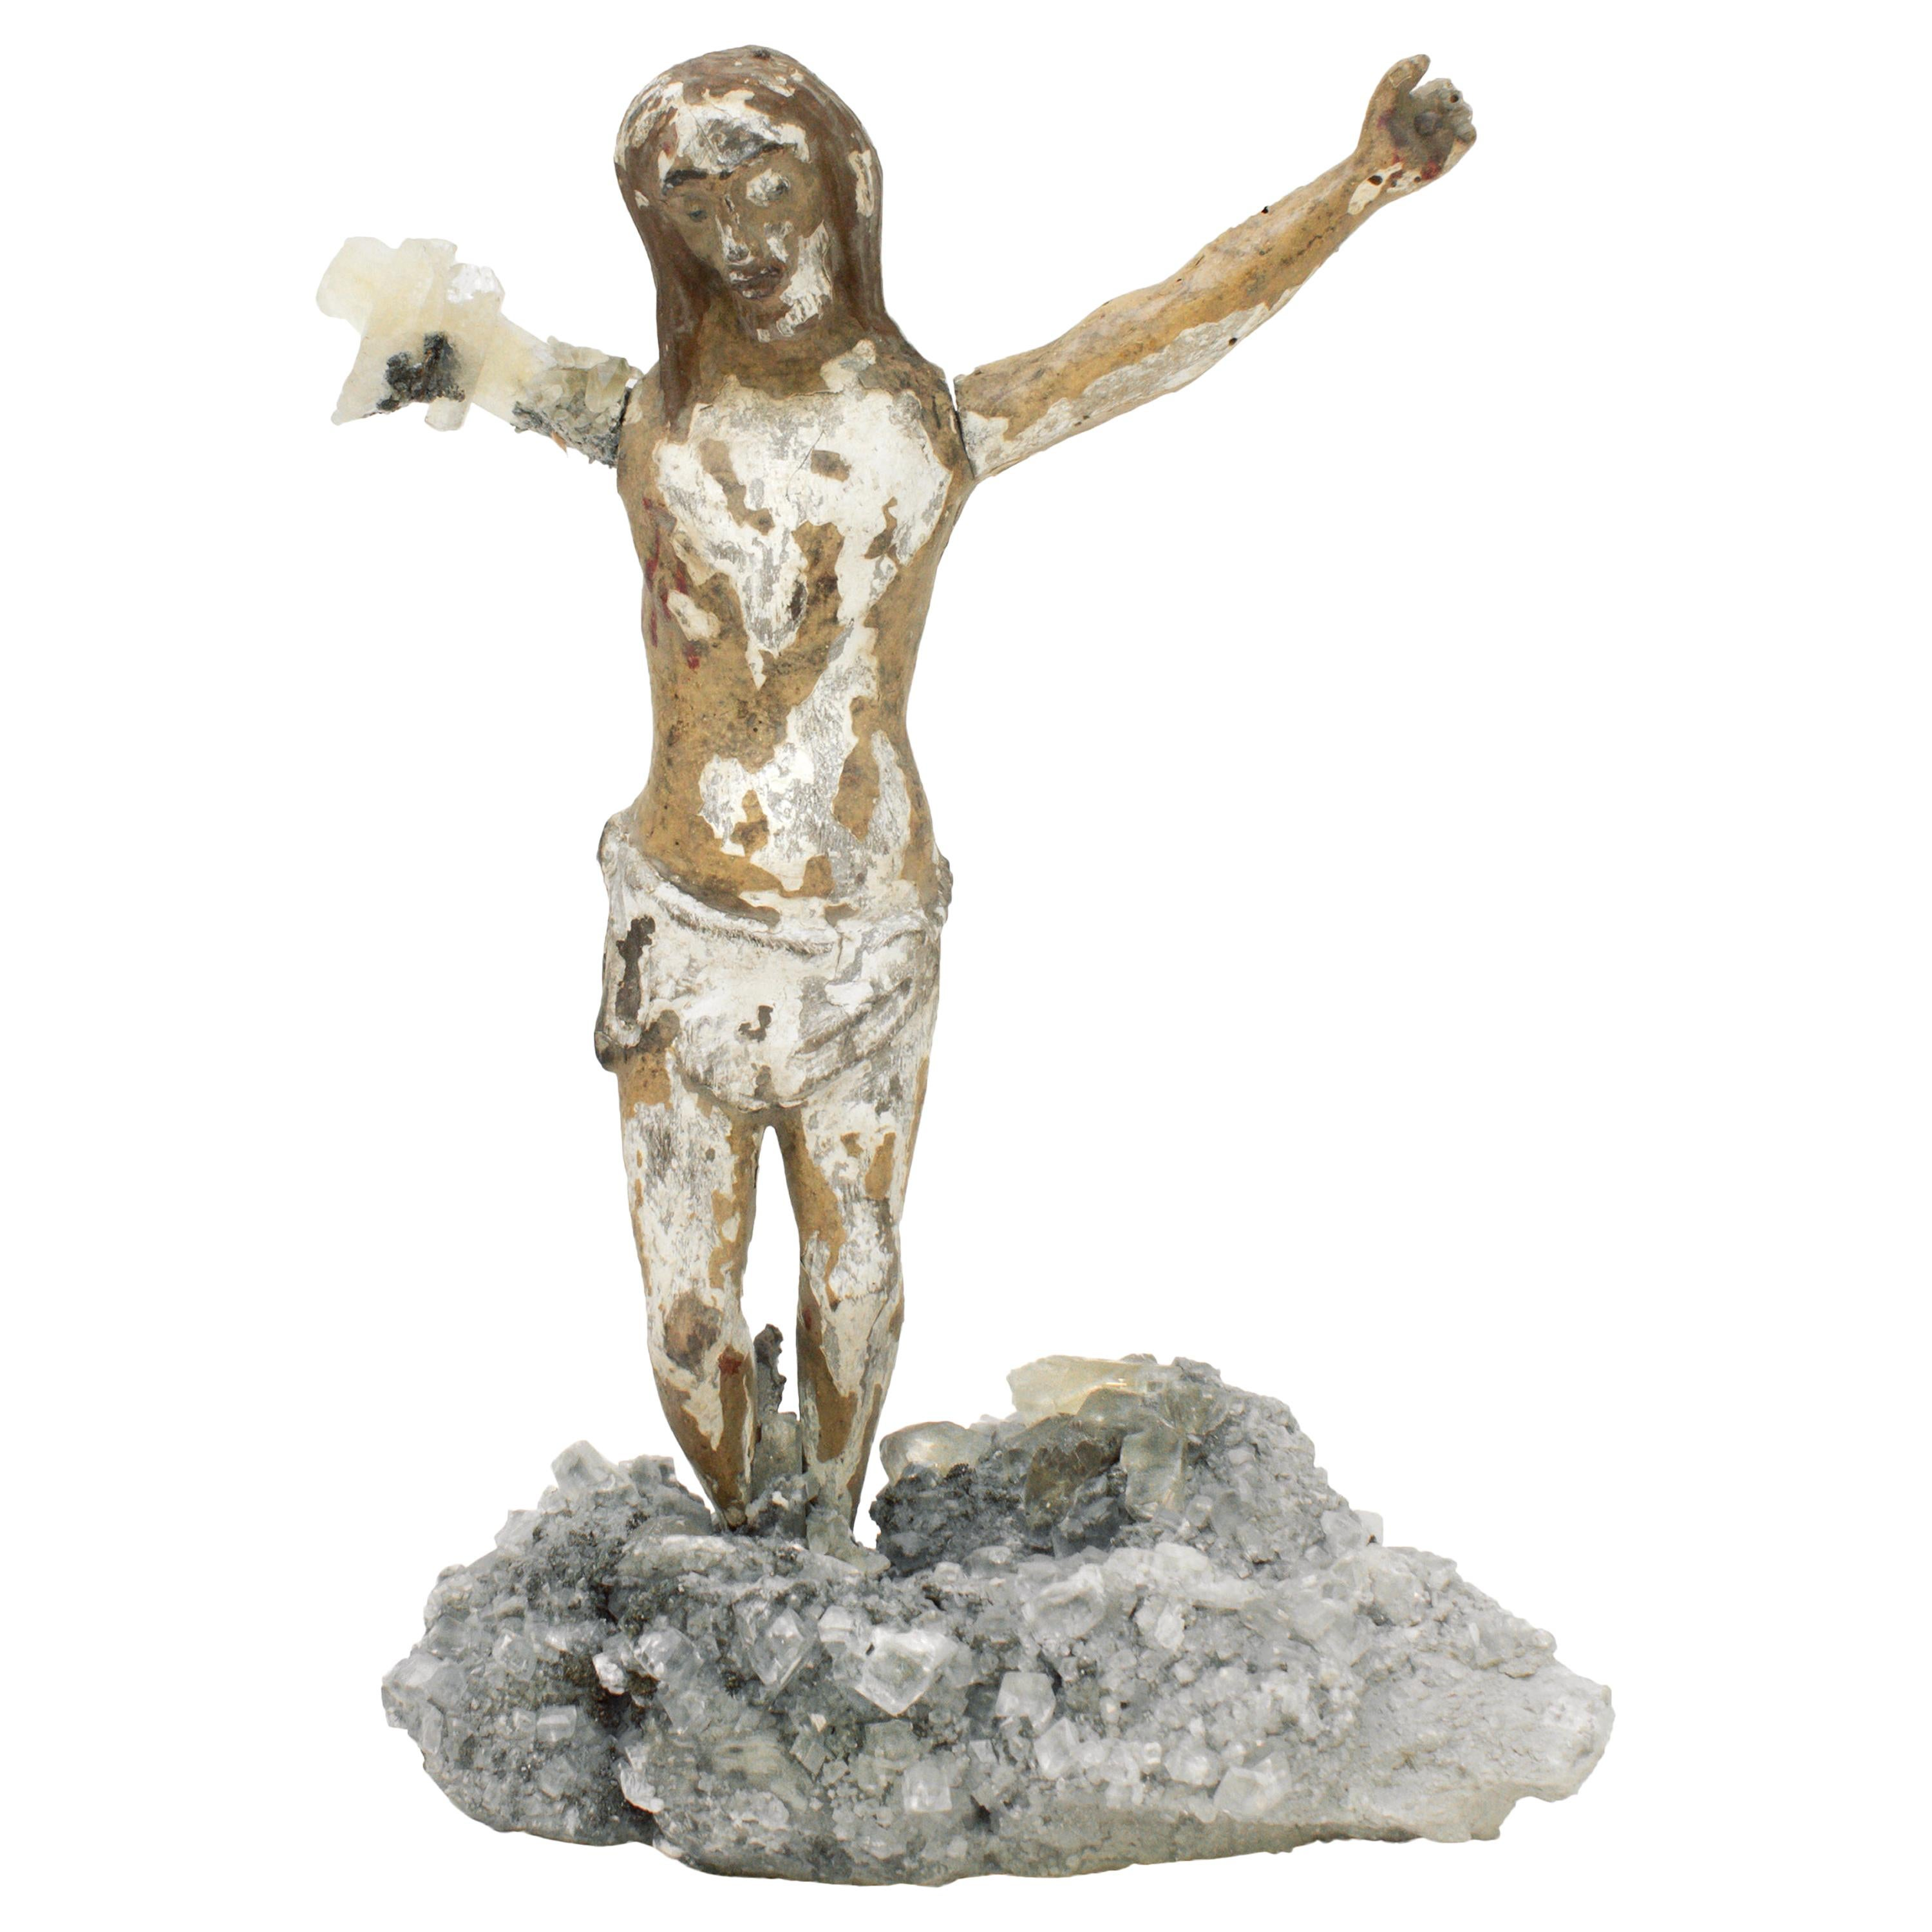 17th Century Italian Figure of Christ with Calcite Crystals on Barite & Calcite